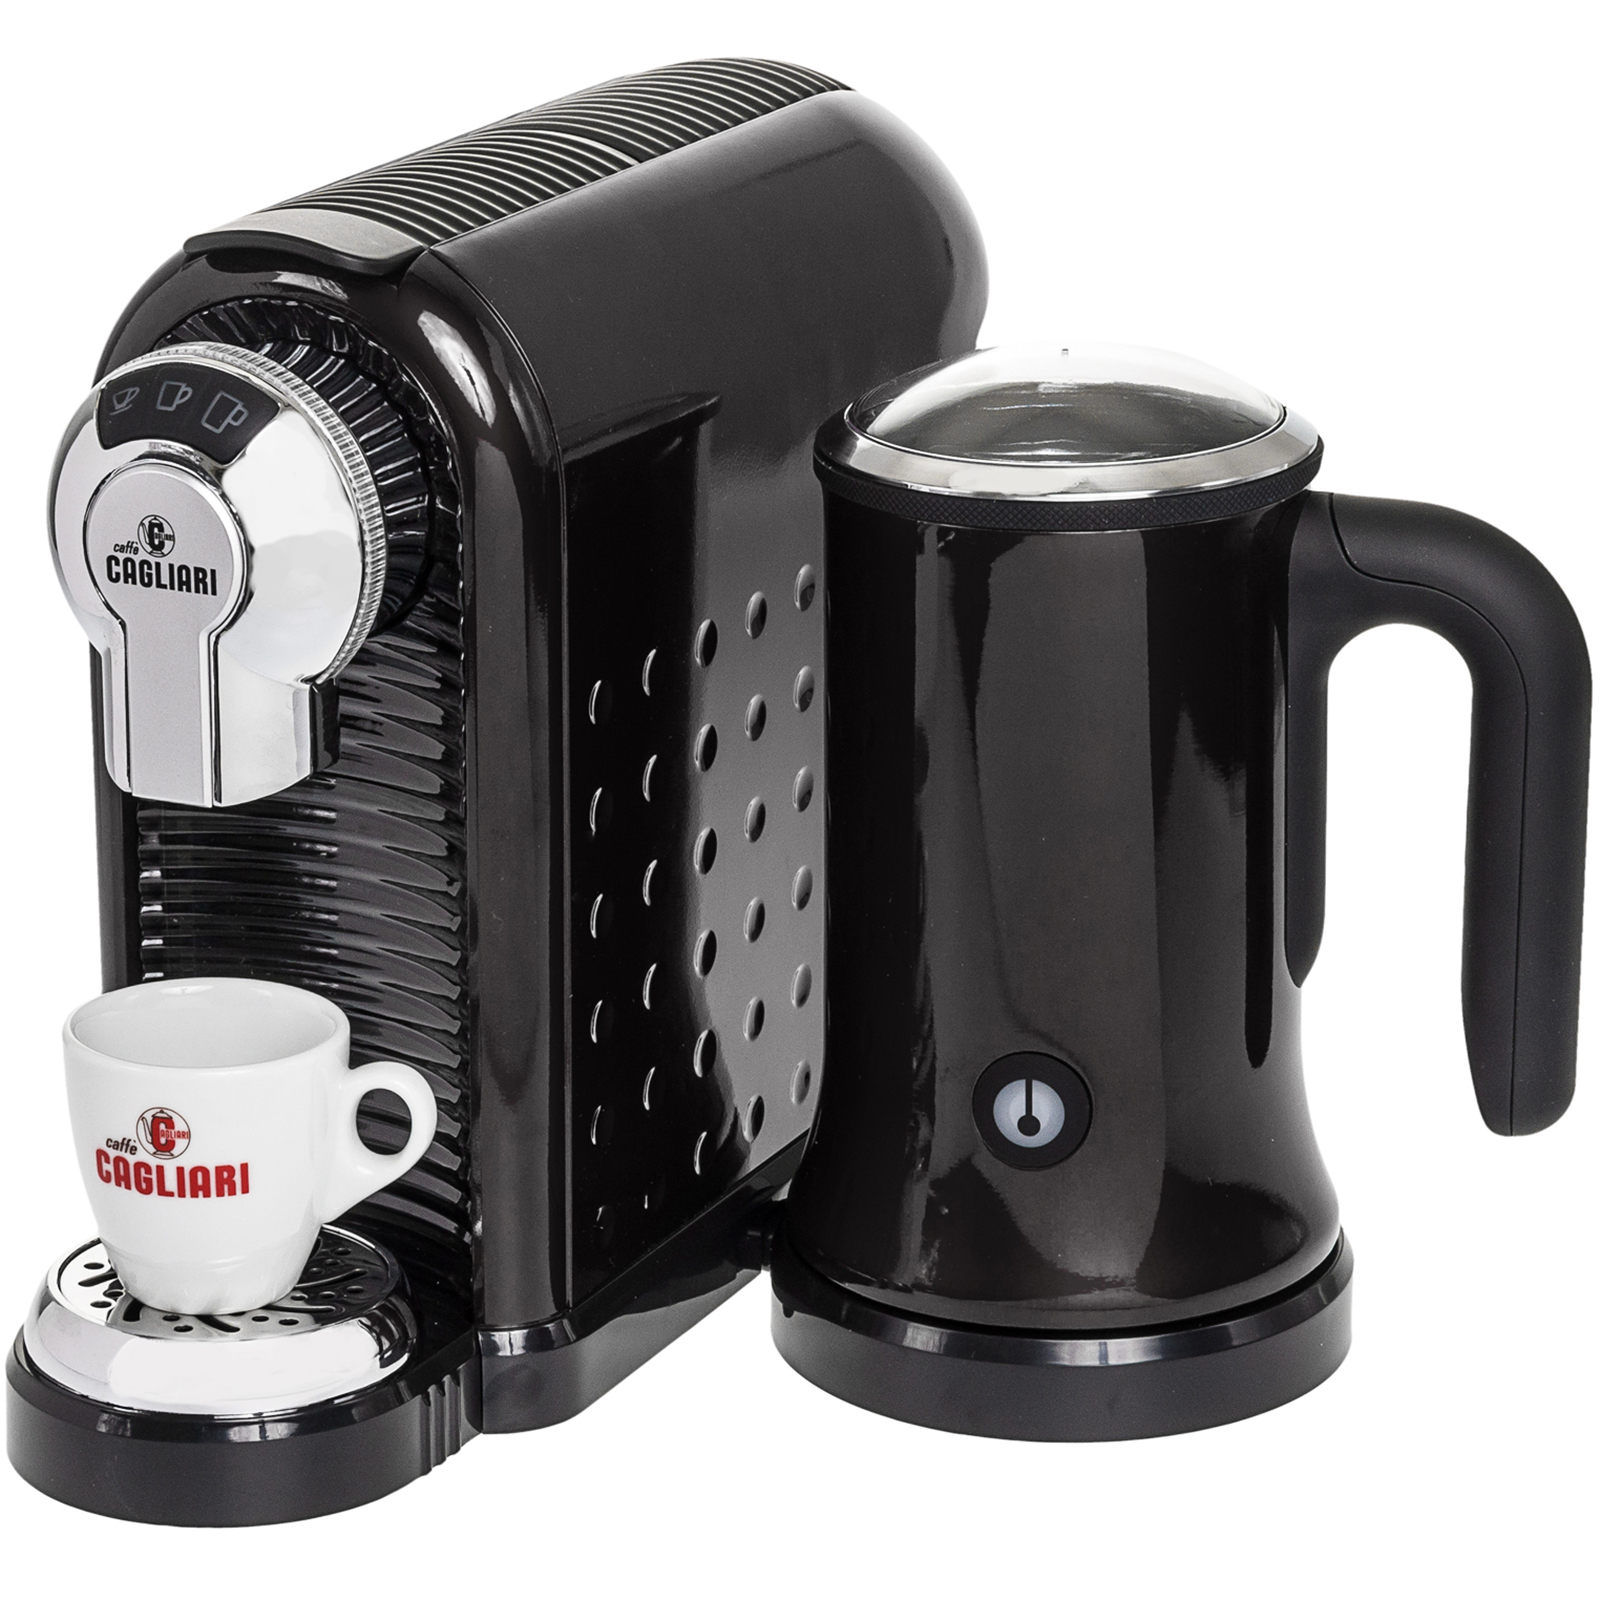 Italian Coffee Maker Small : CAFFE CAGLIARI NEW Carina Italian Coffee Espresso Machine w/ Milk Frother eBay